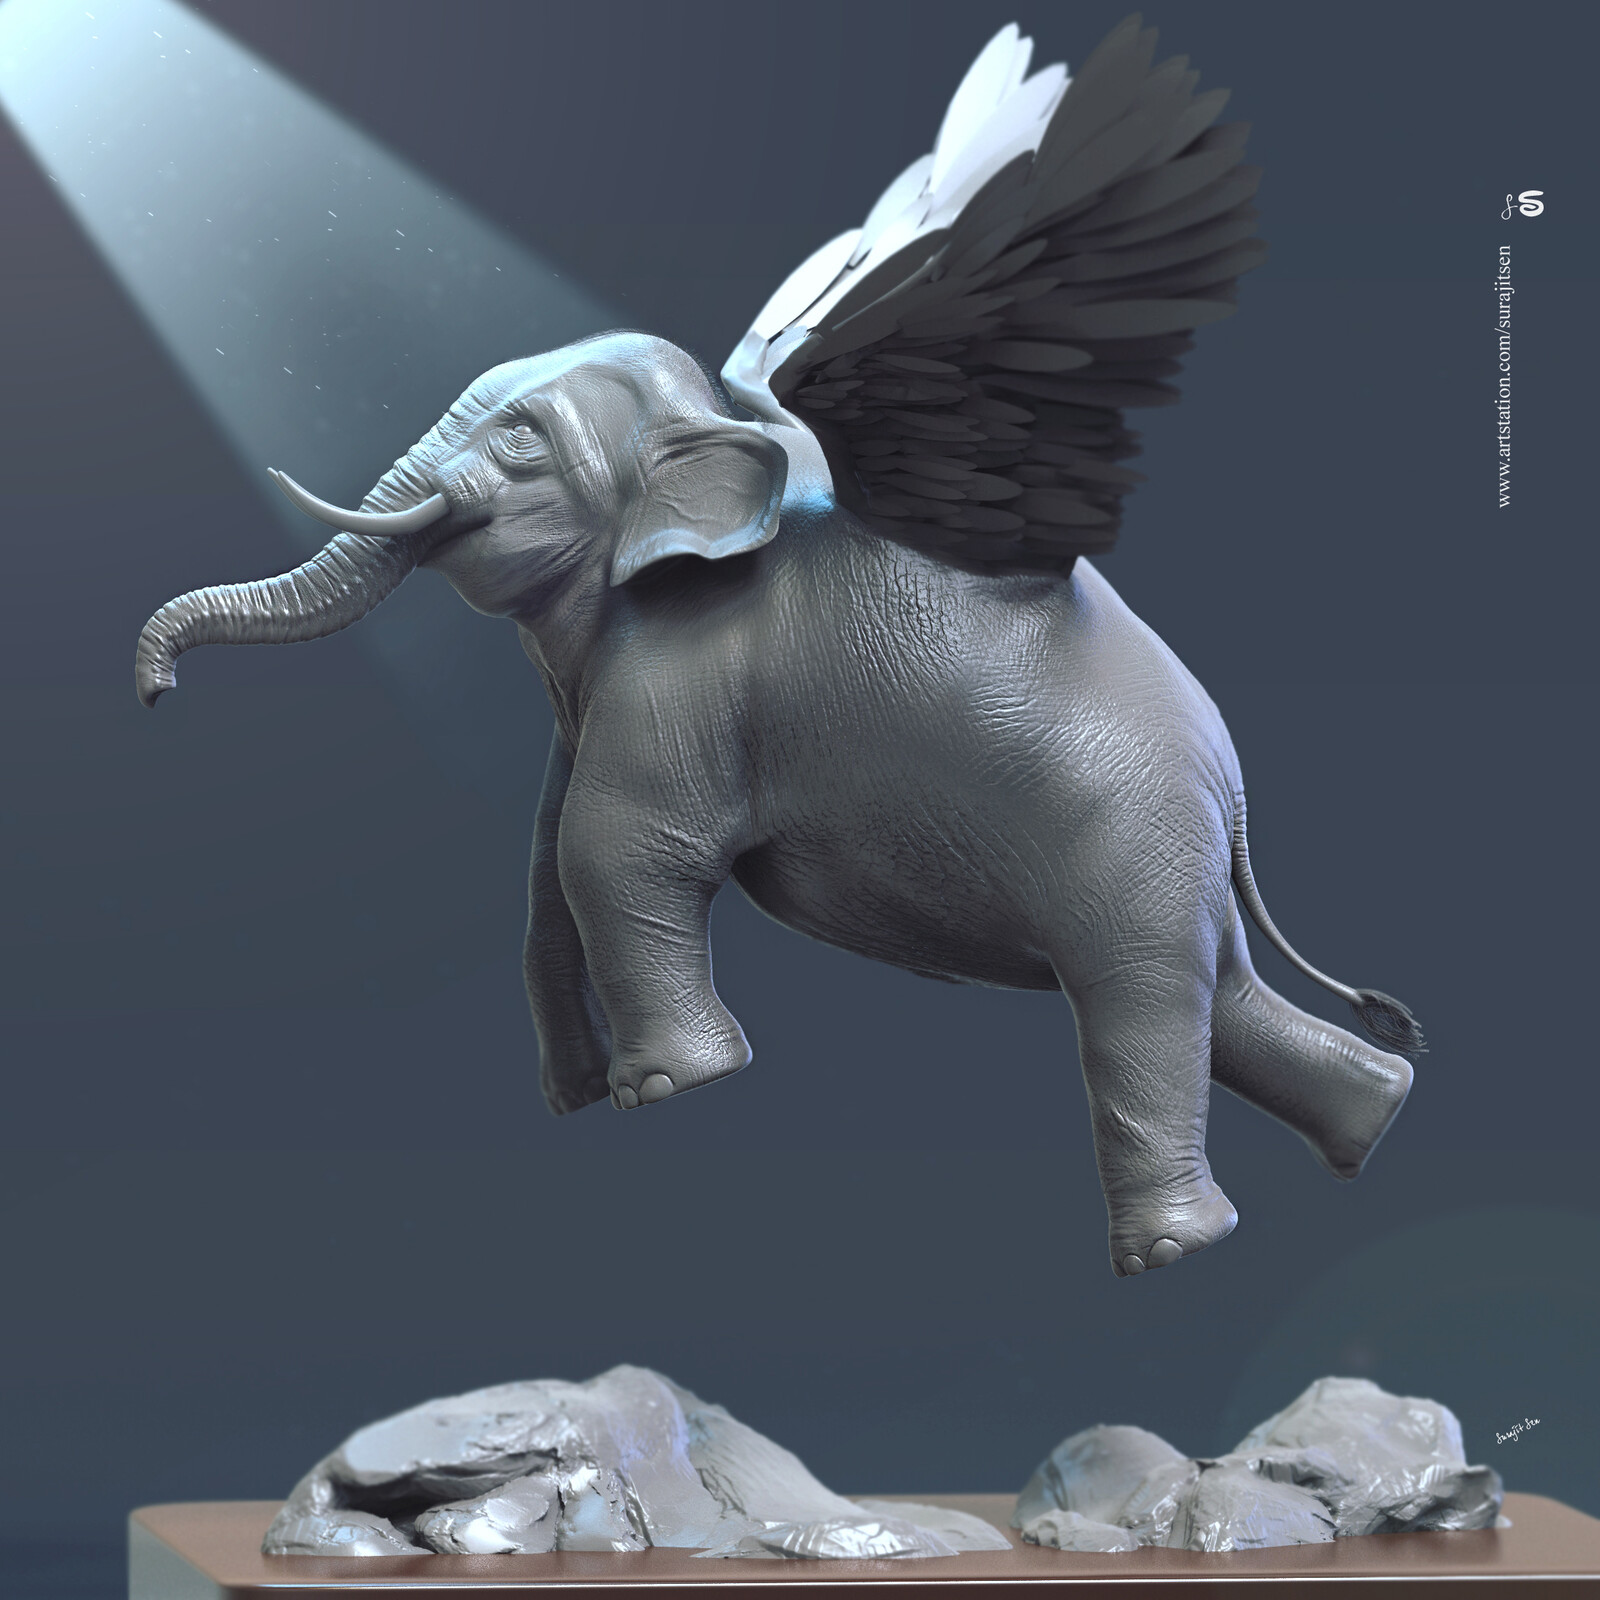 #flyingelephant